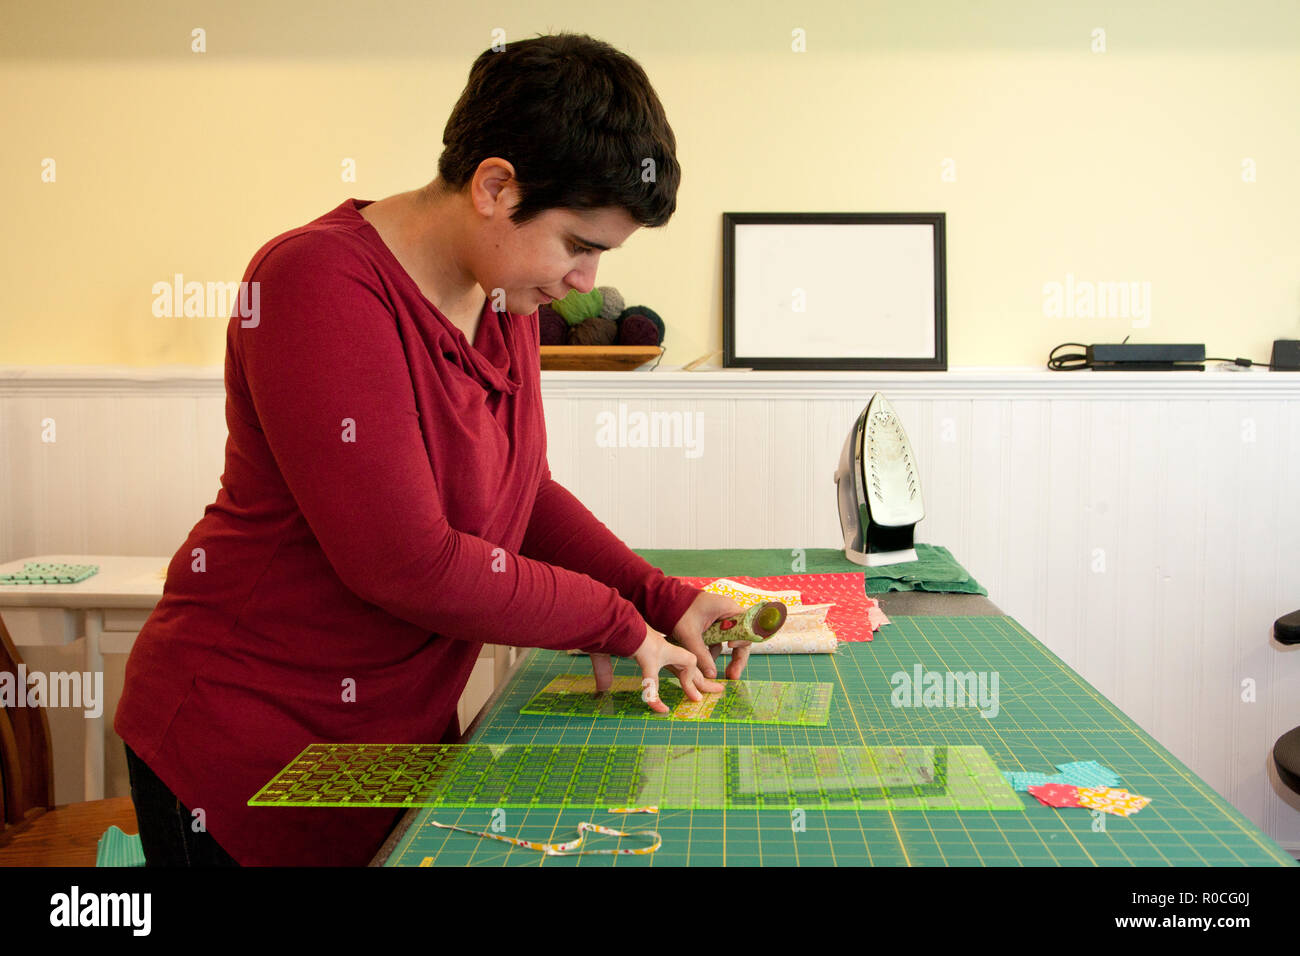 Woman Using A Fabric Cutter And Measuring Tools To Make Small Strips Stock Photo Alamy